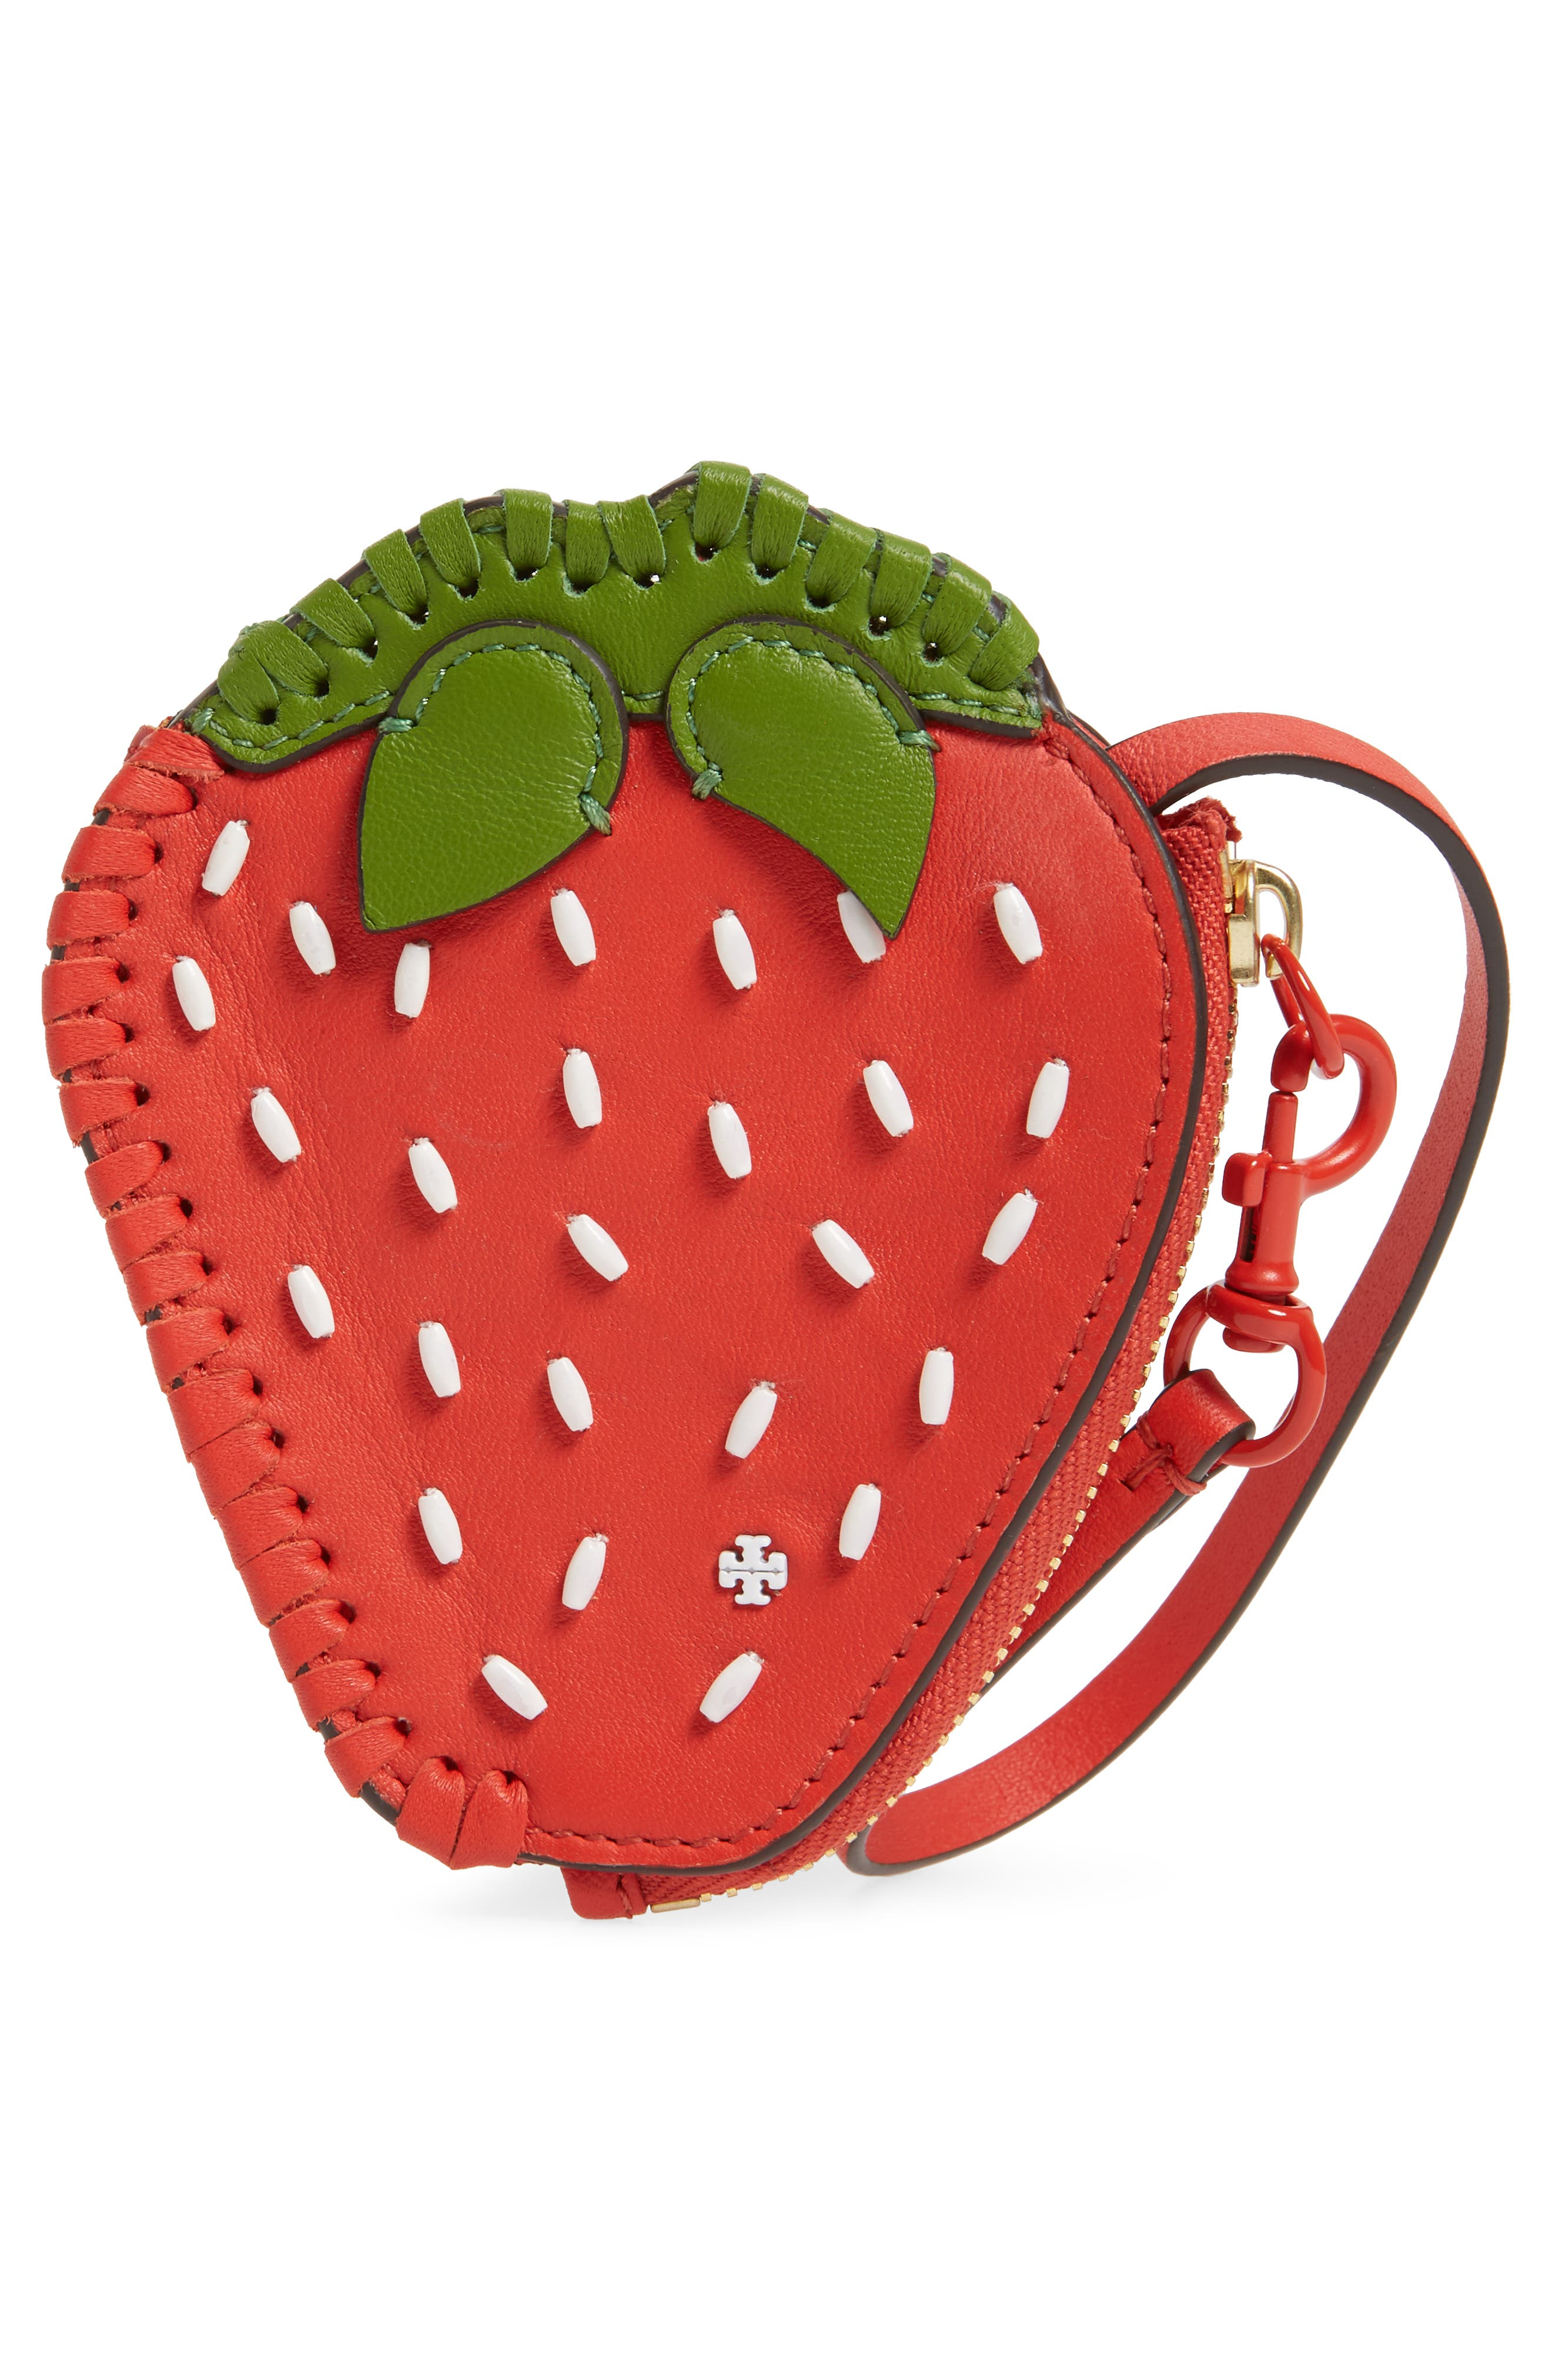 Strawberry Leather Coin Pouch,                             Alternate thumbnail 3, color,                             Poppy Orange / Leaf Green